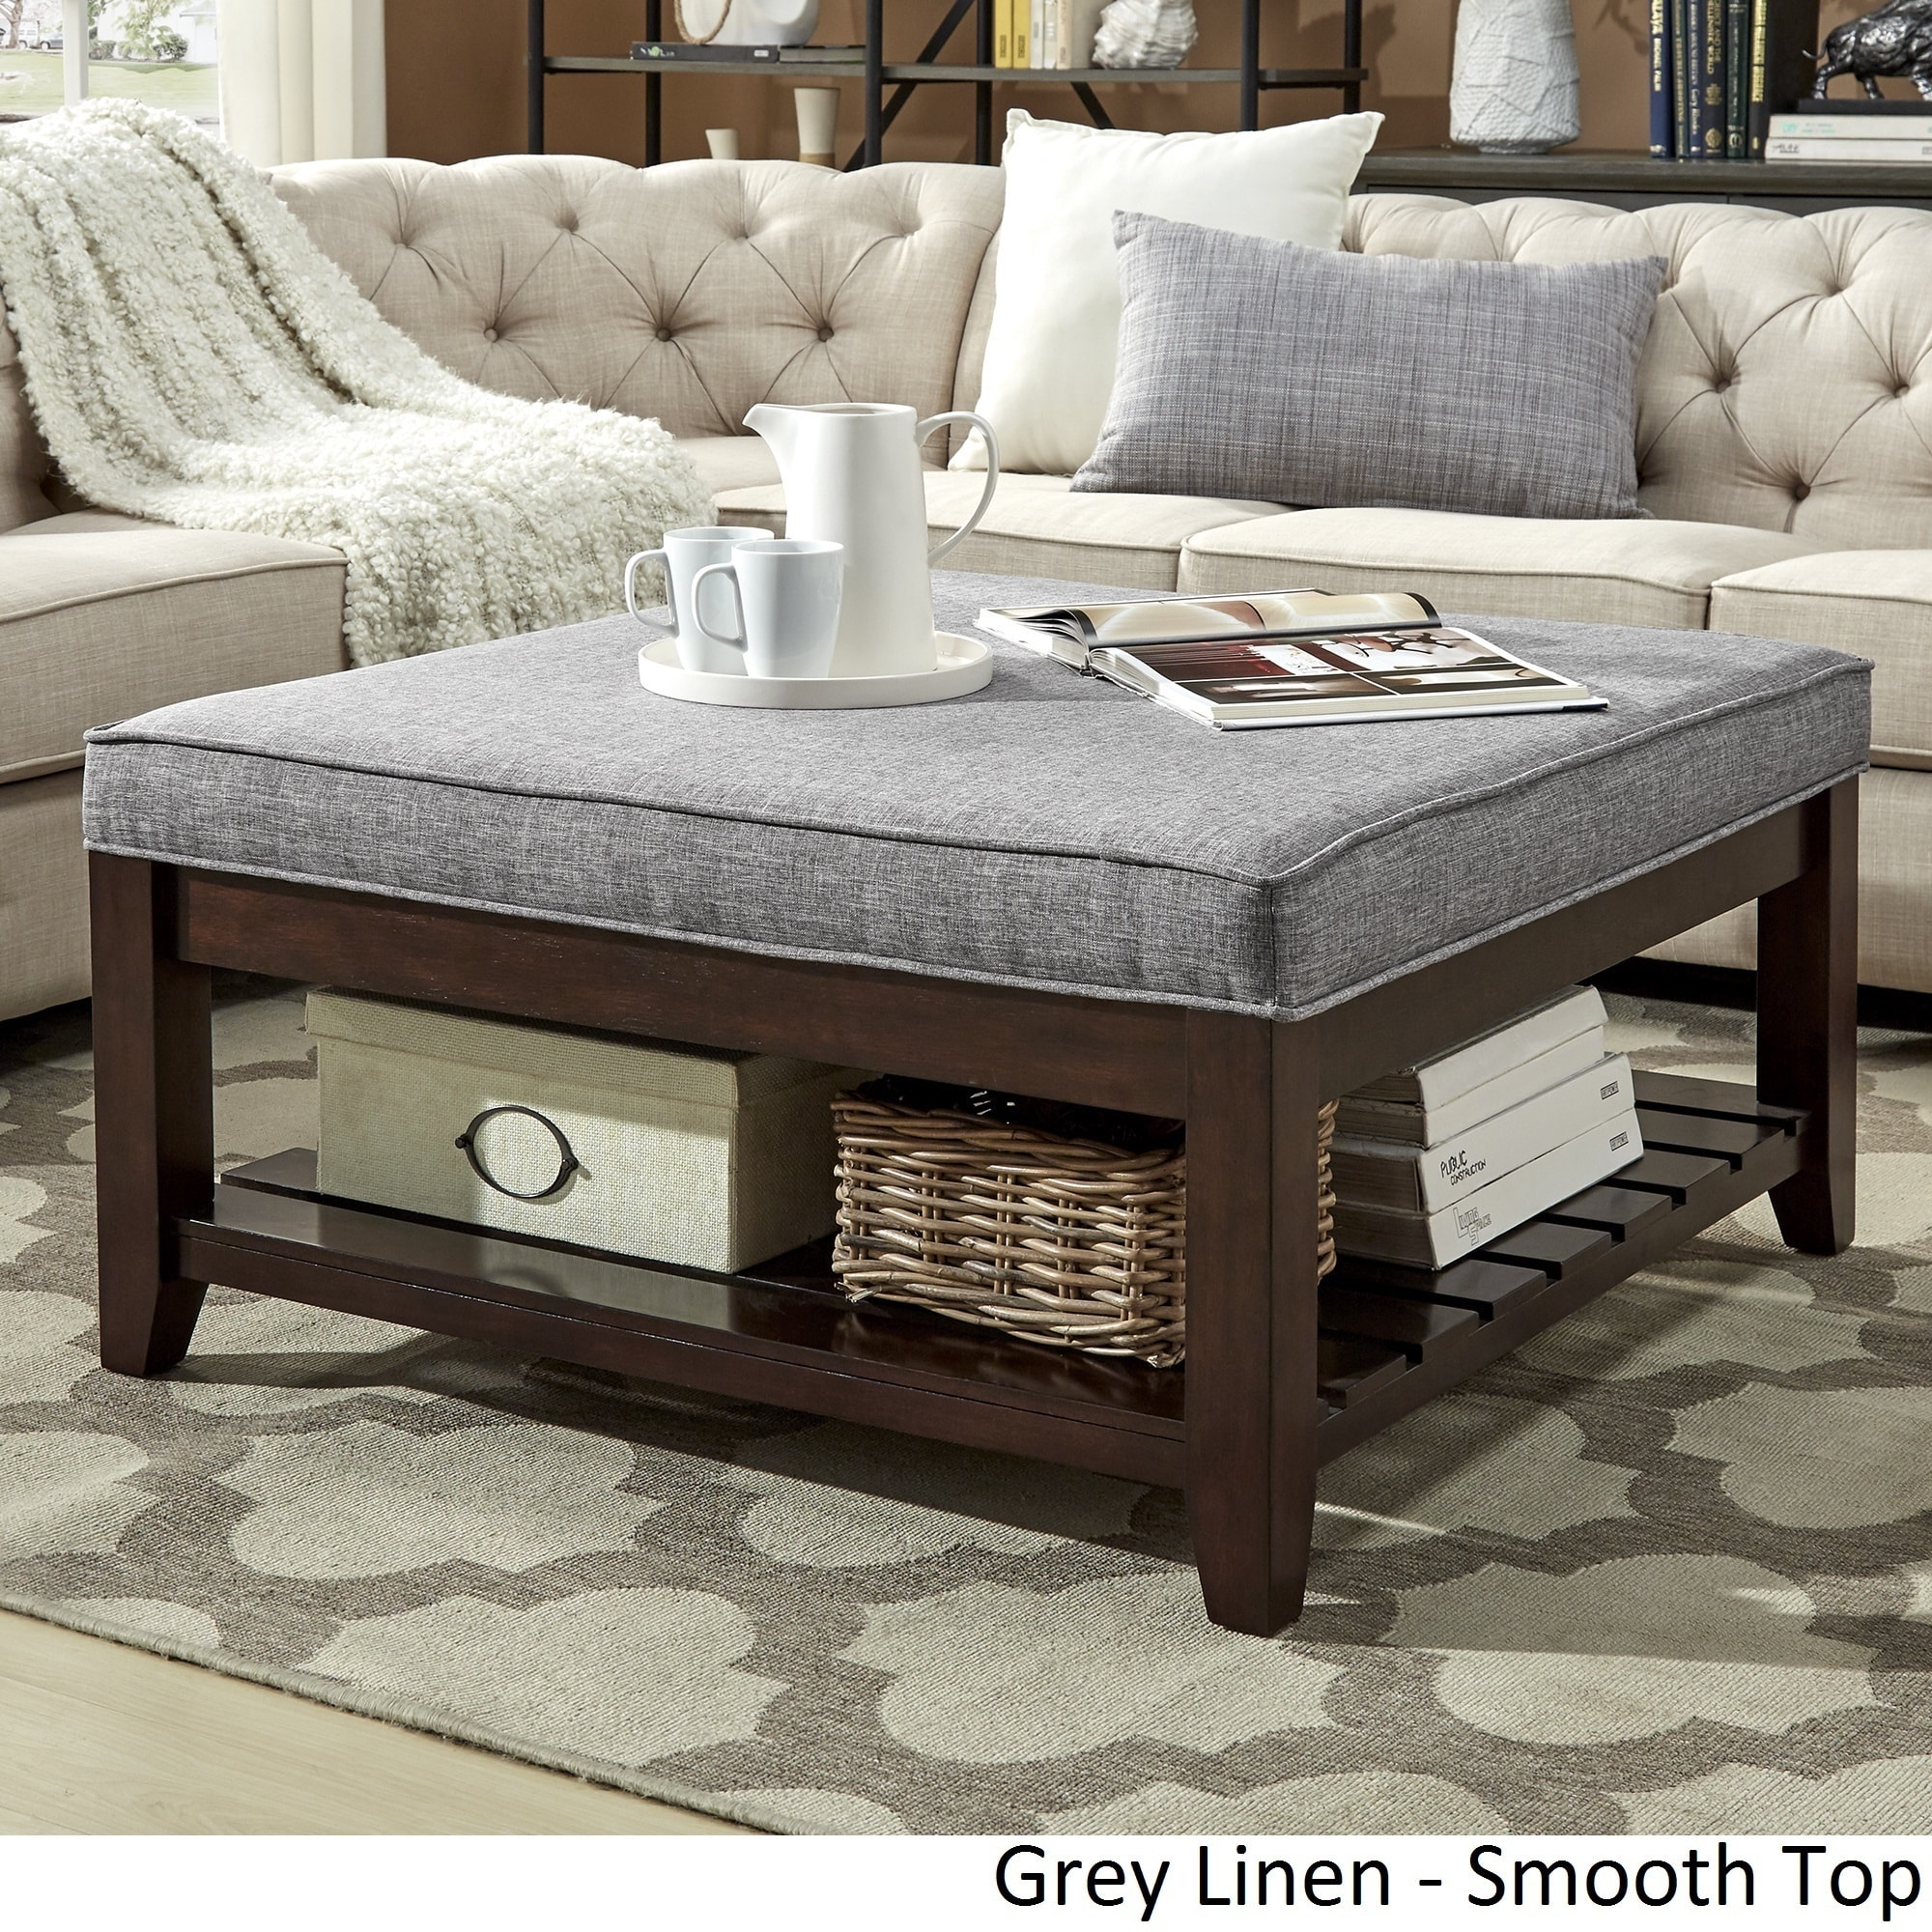 Large Living Room Coffee Table Lennon Espresso Planked Storage